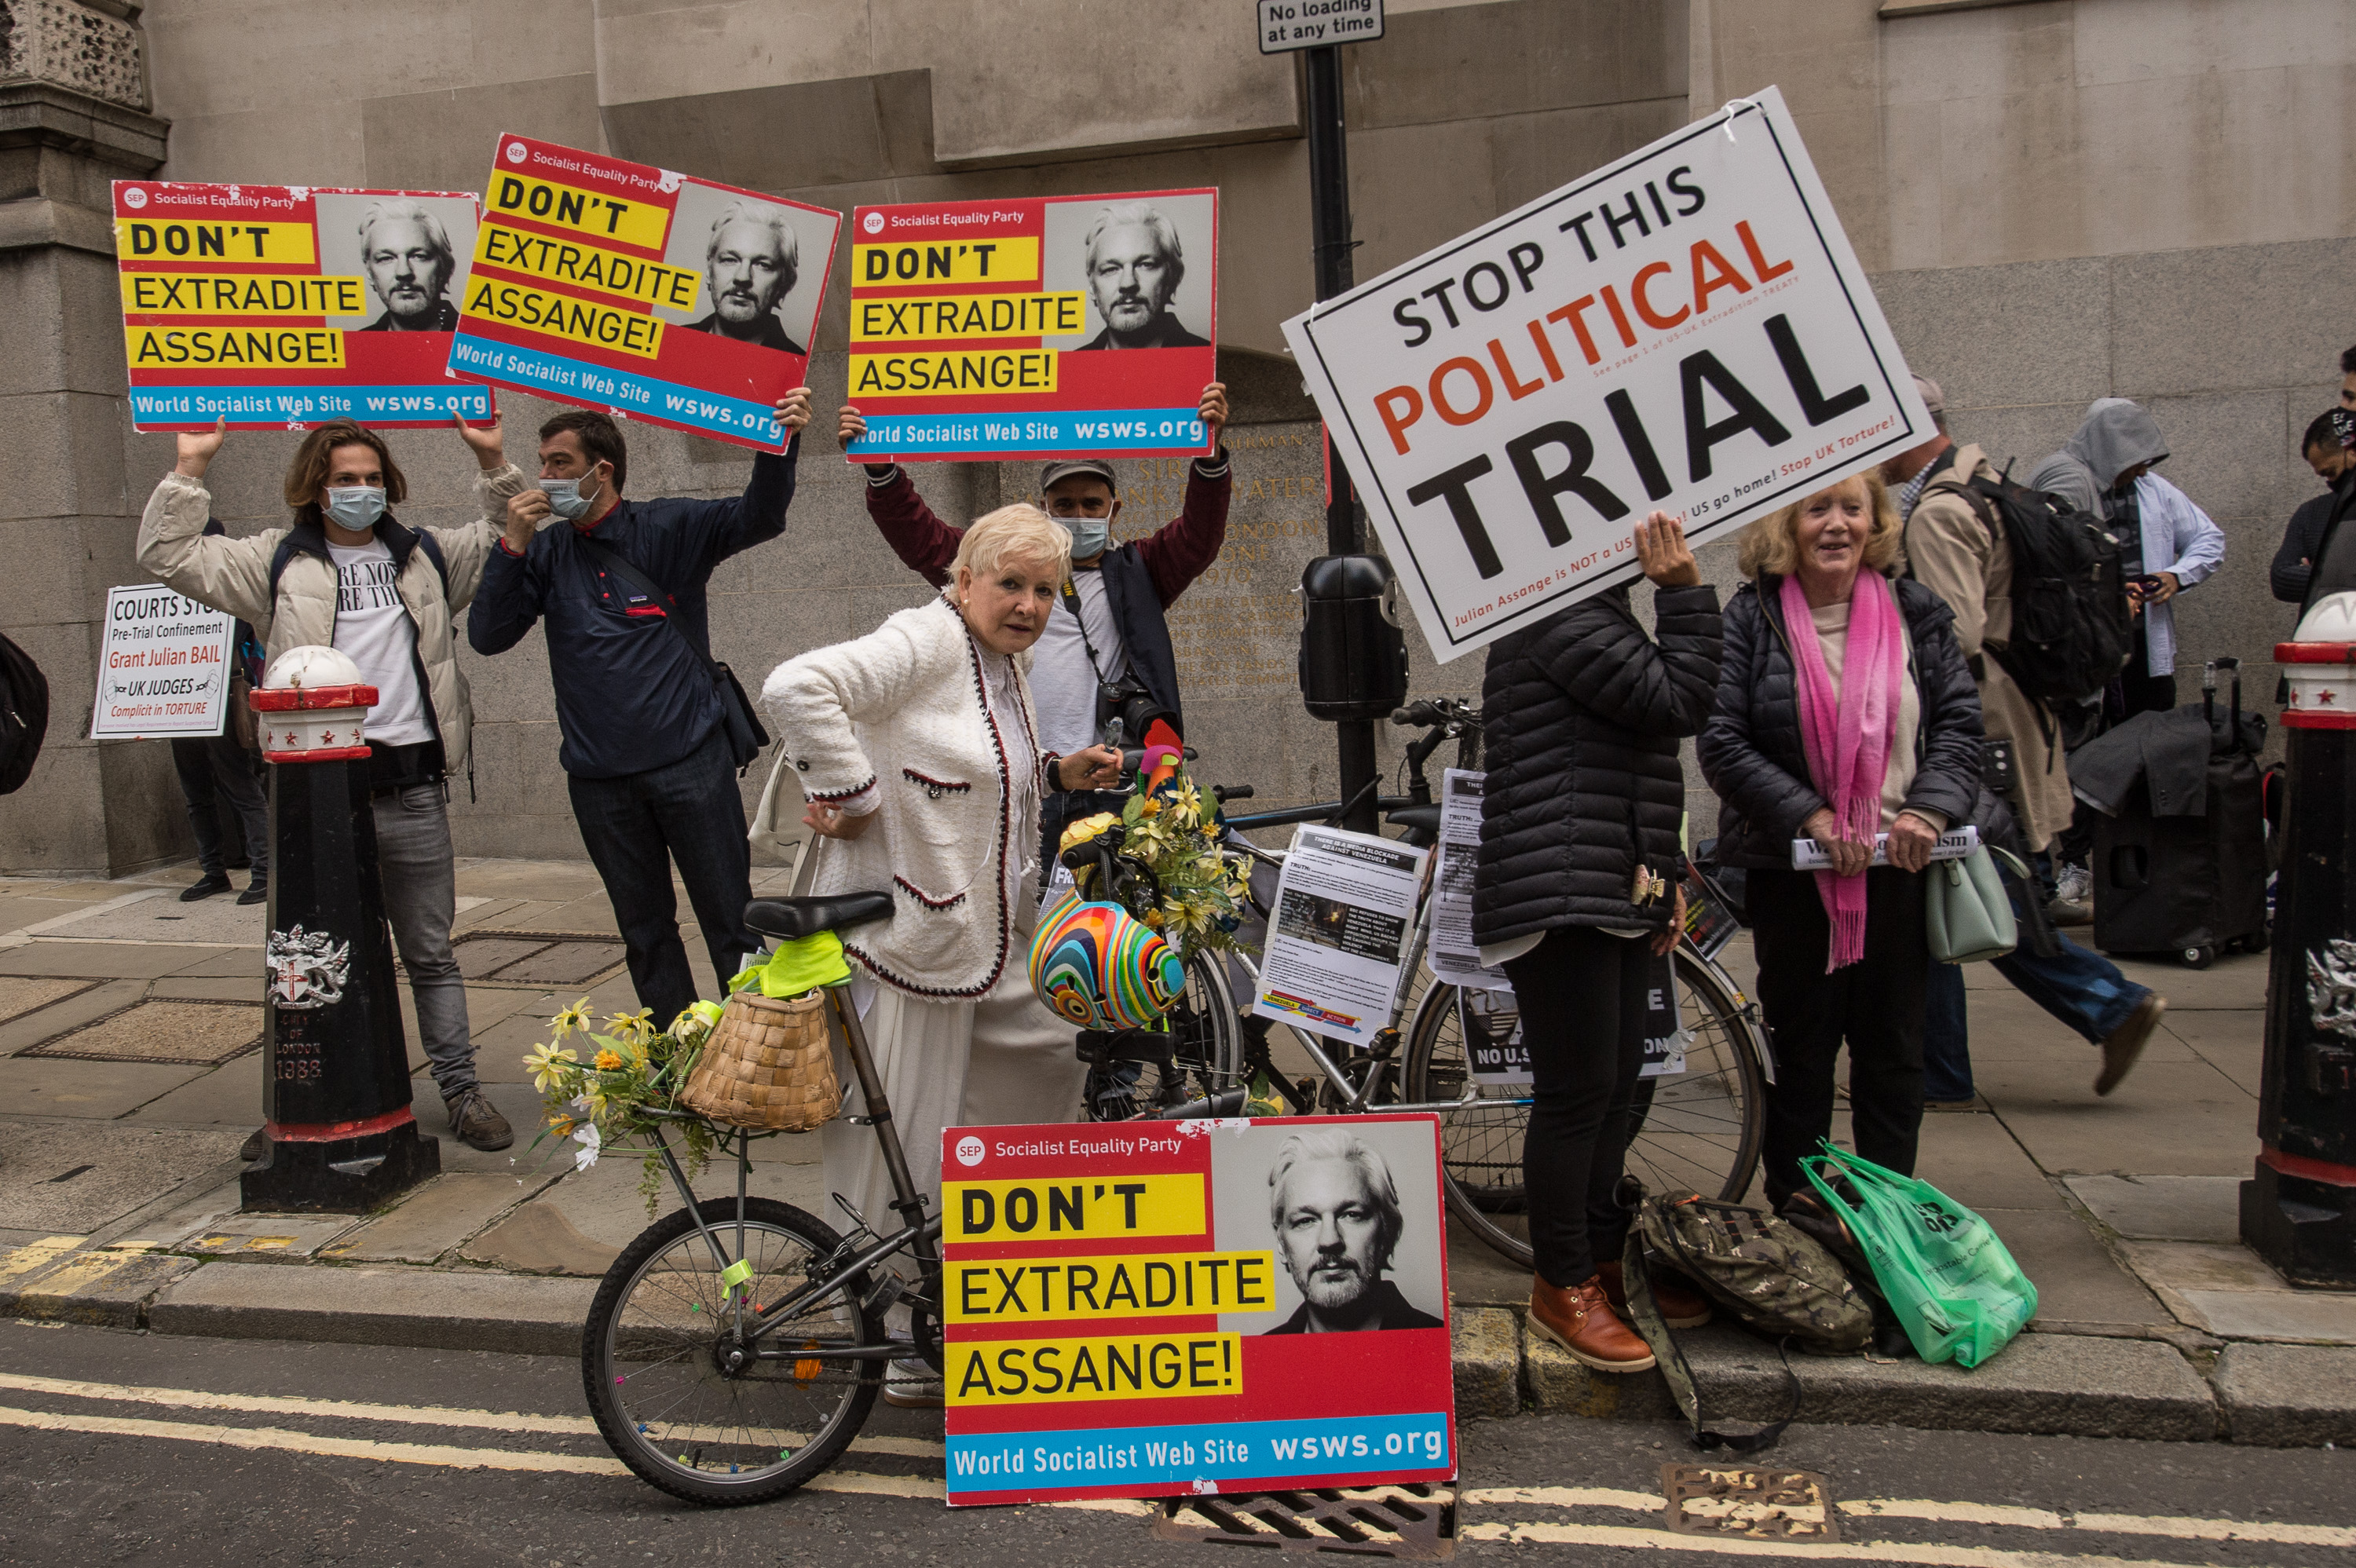 Assange Court Report September 9: Afternoon